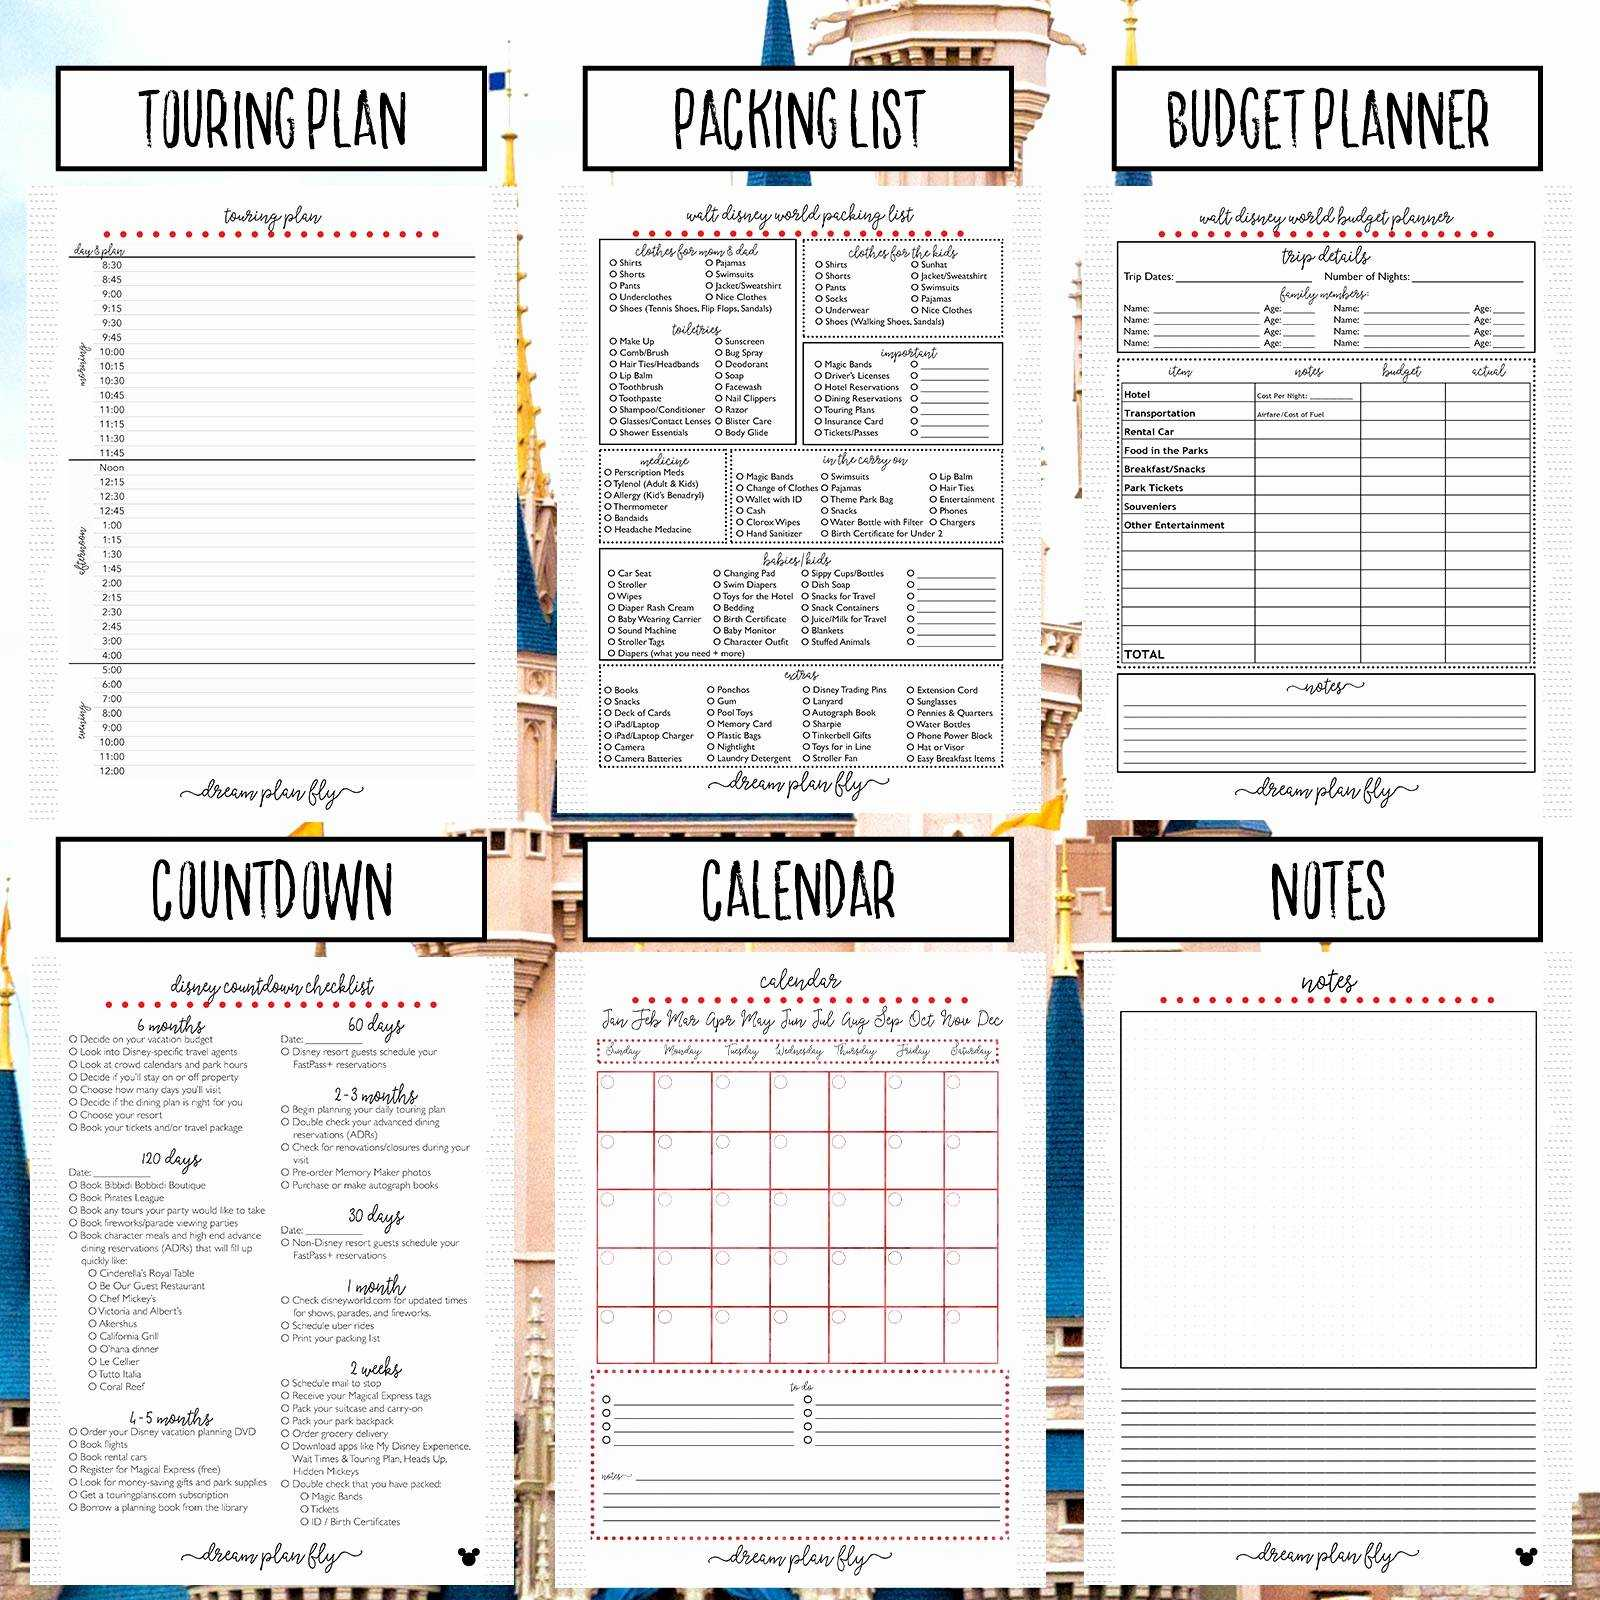 Schedule Worksheet Templates as Well as Editorial Calendar Template Excel New Spreadsheet Type Auto